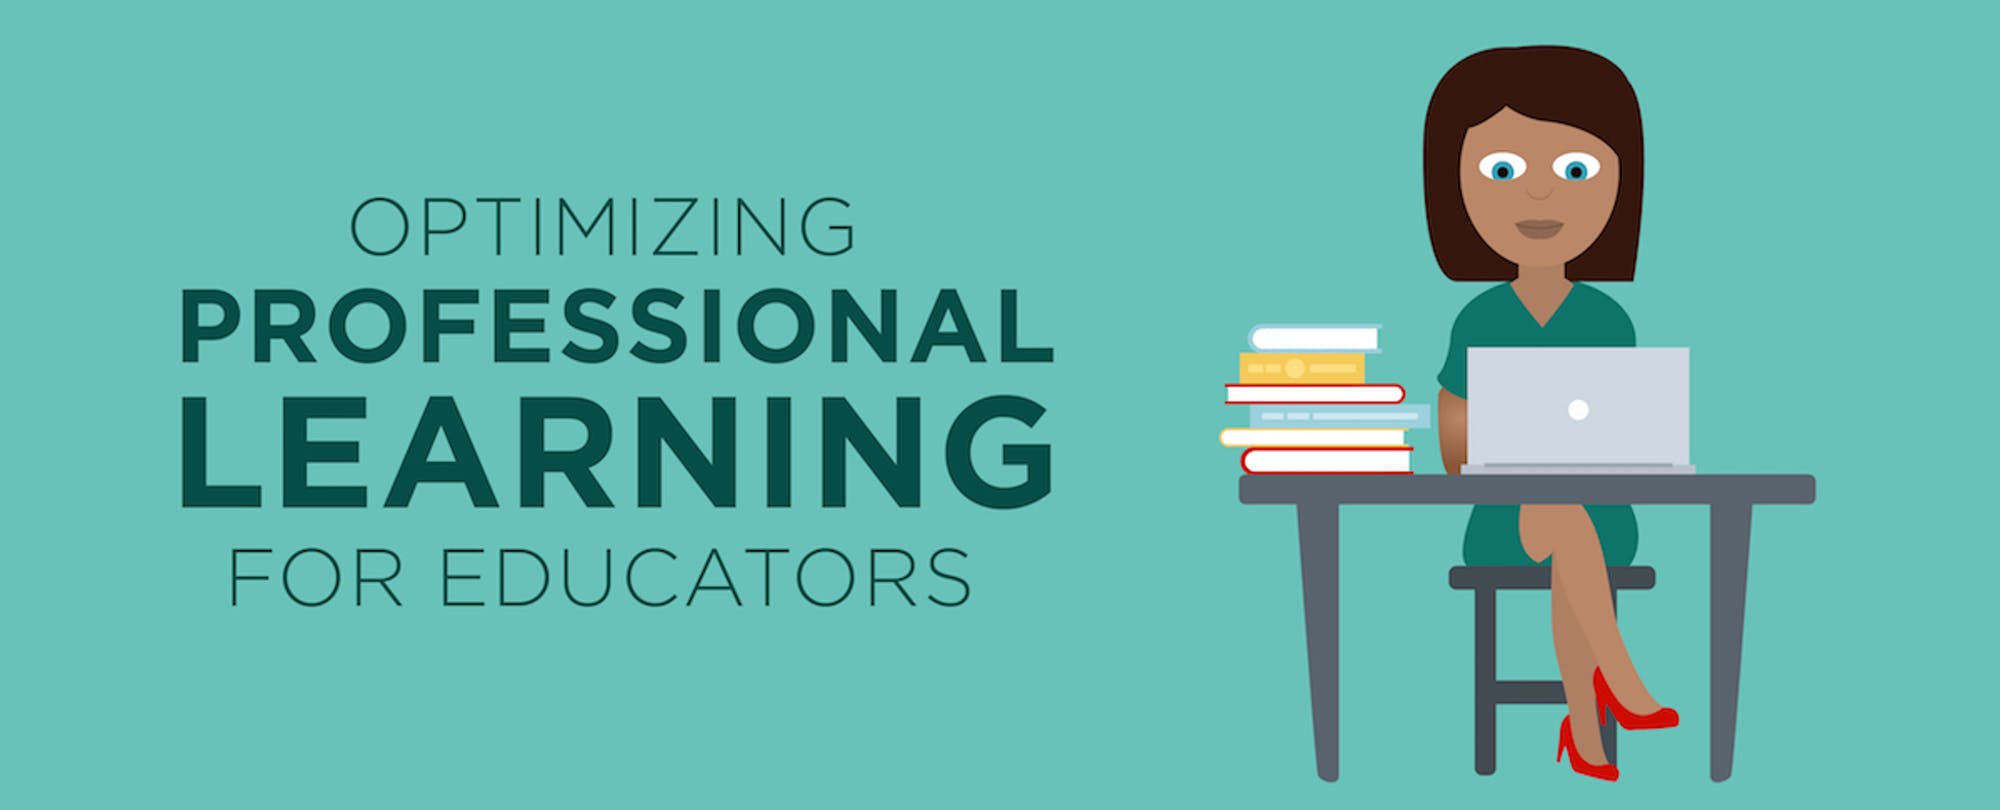 Optimizing Professional Learning for Educators (Infographic)